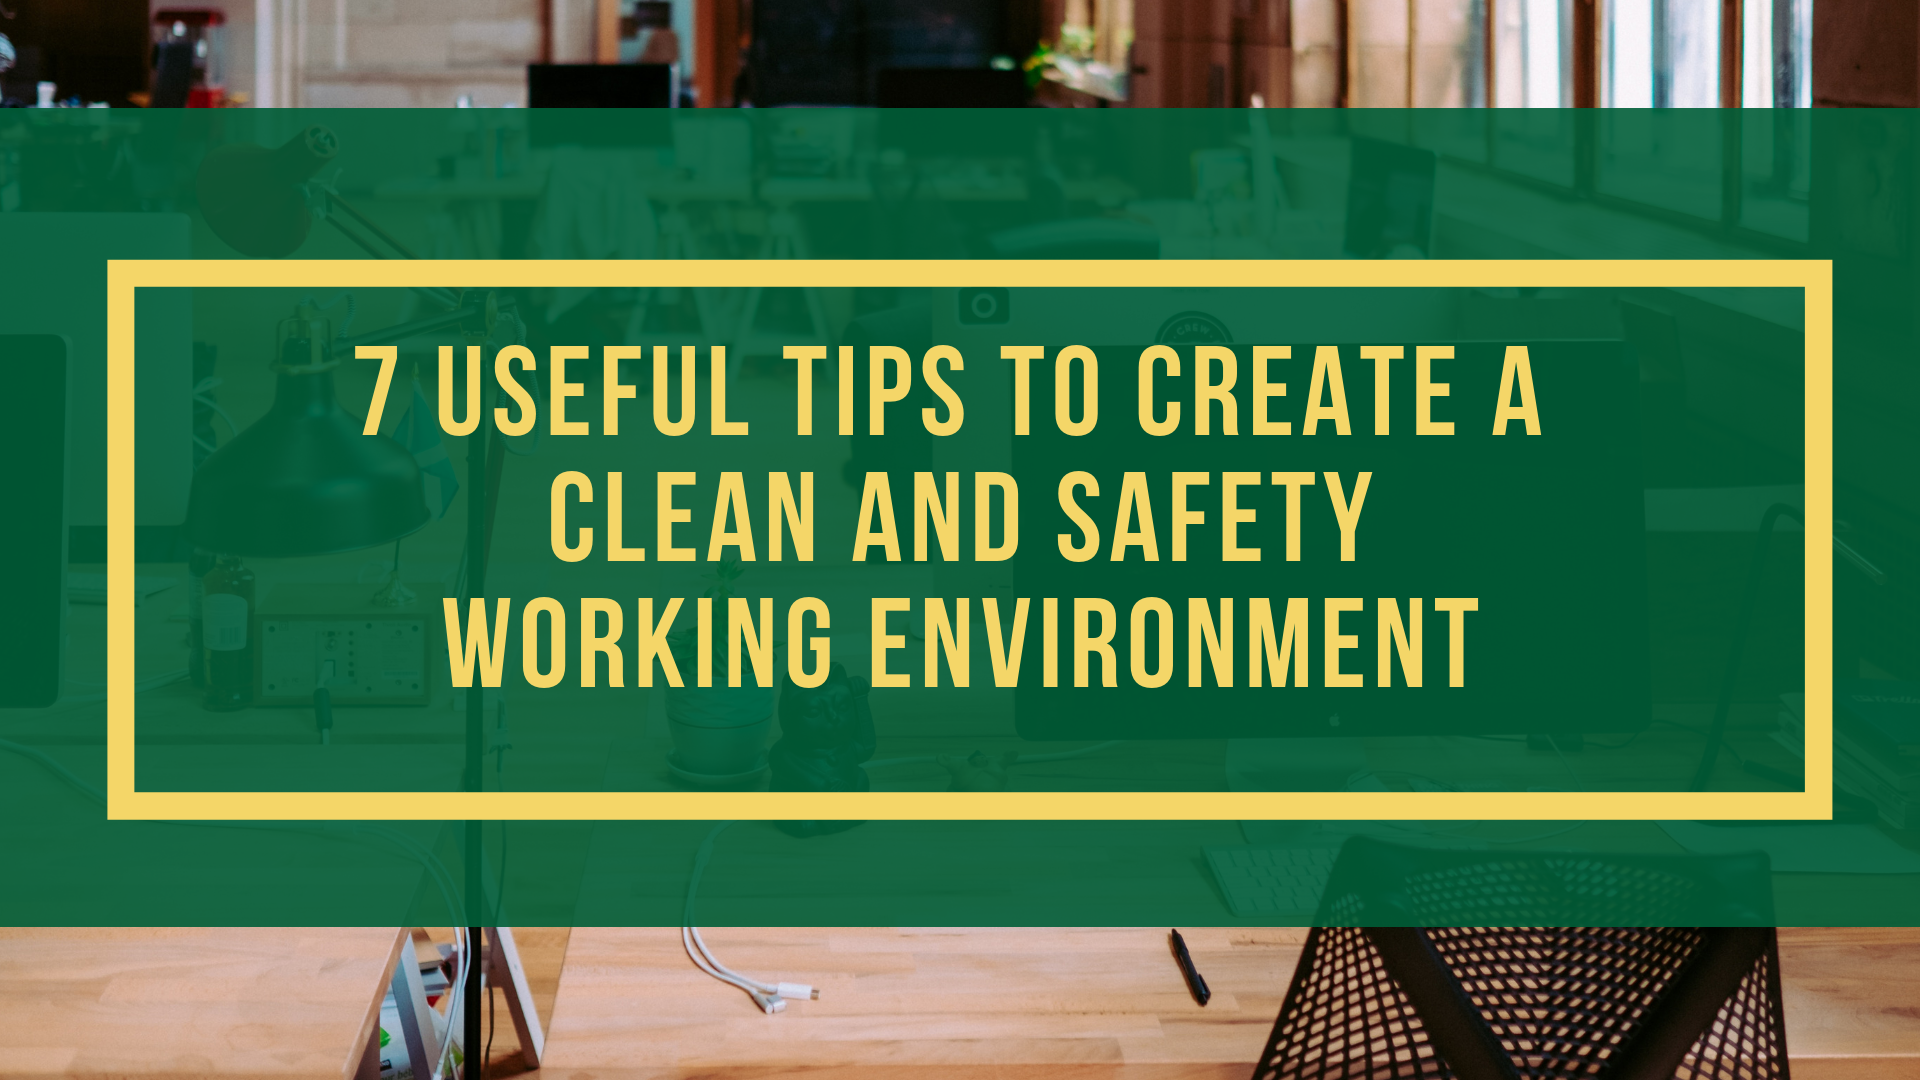 7 Useful Tips to Create A Clean and Safety Working Environment